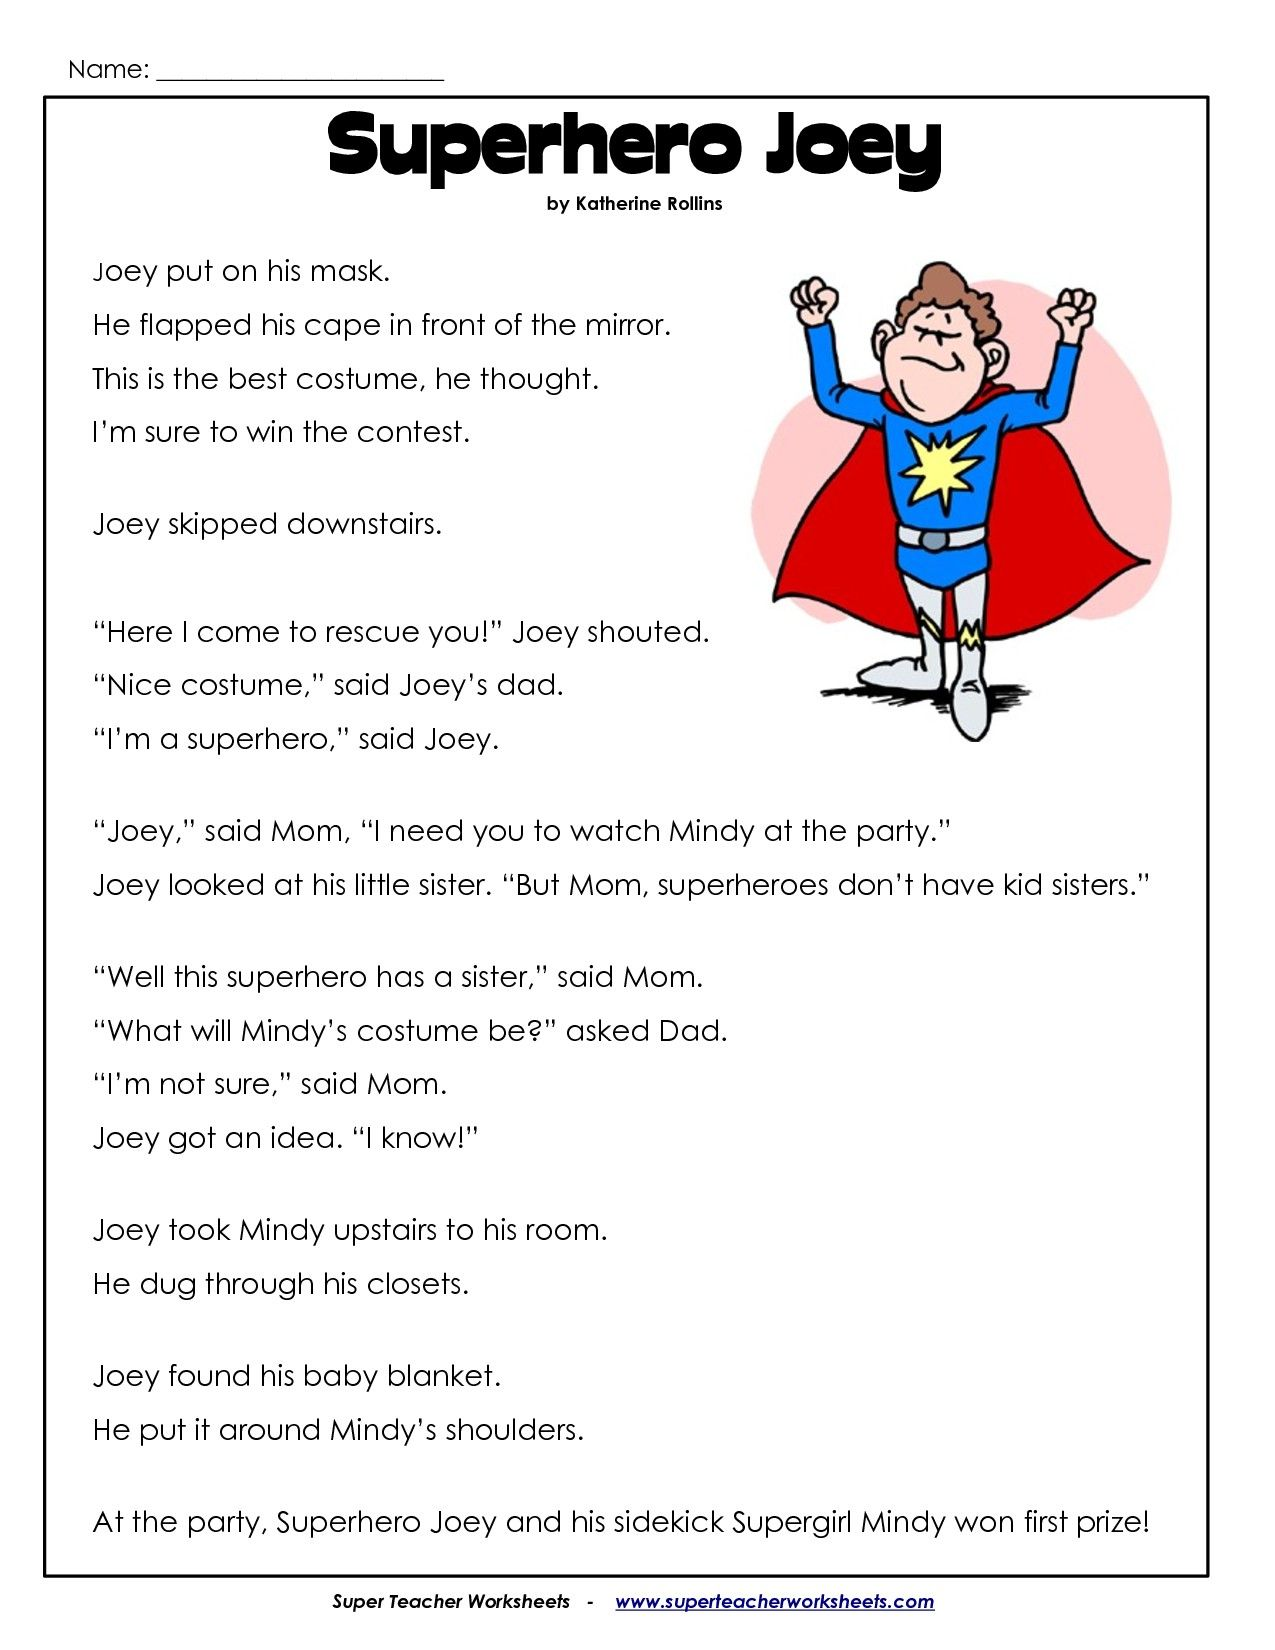 Free Worksheet Free Printable Reading Comprehension Worksheets For 4th Grade 2nd grade reading comprehension blizzard bags pinterest worksheets pdf